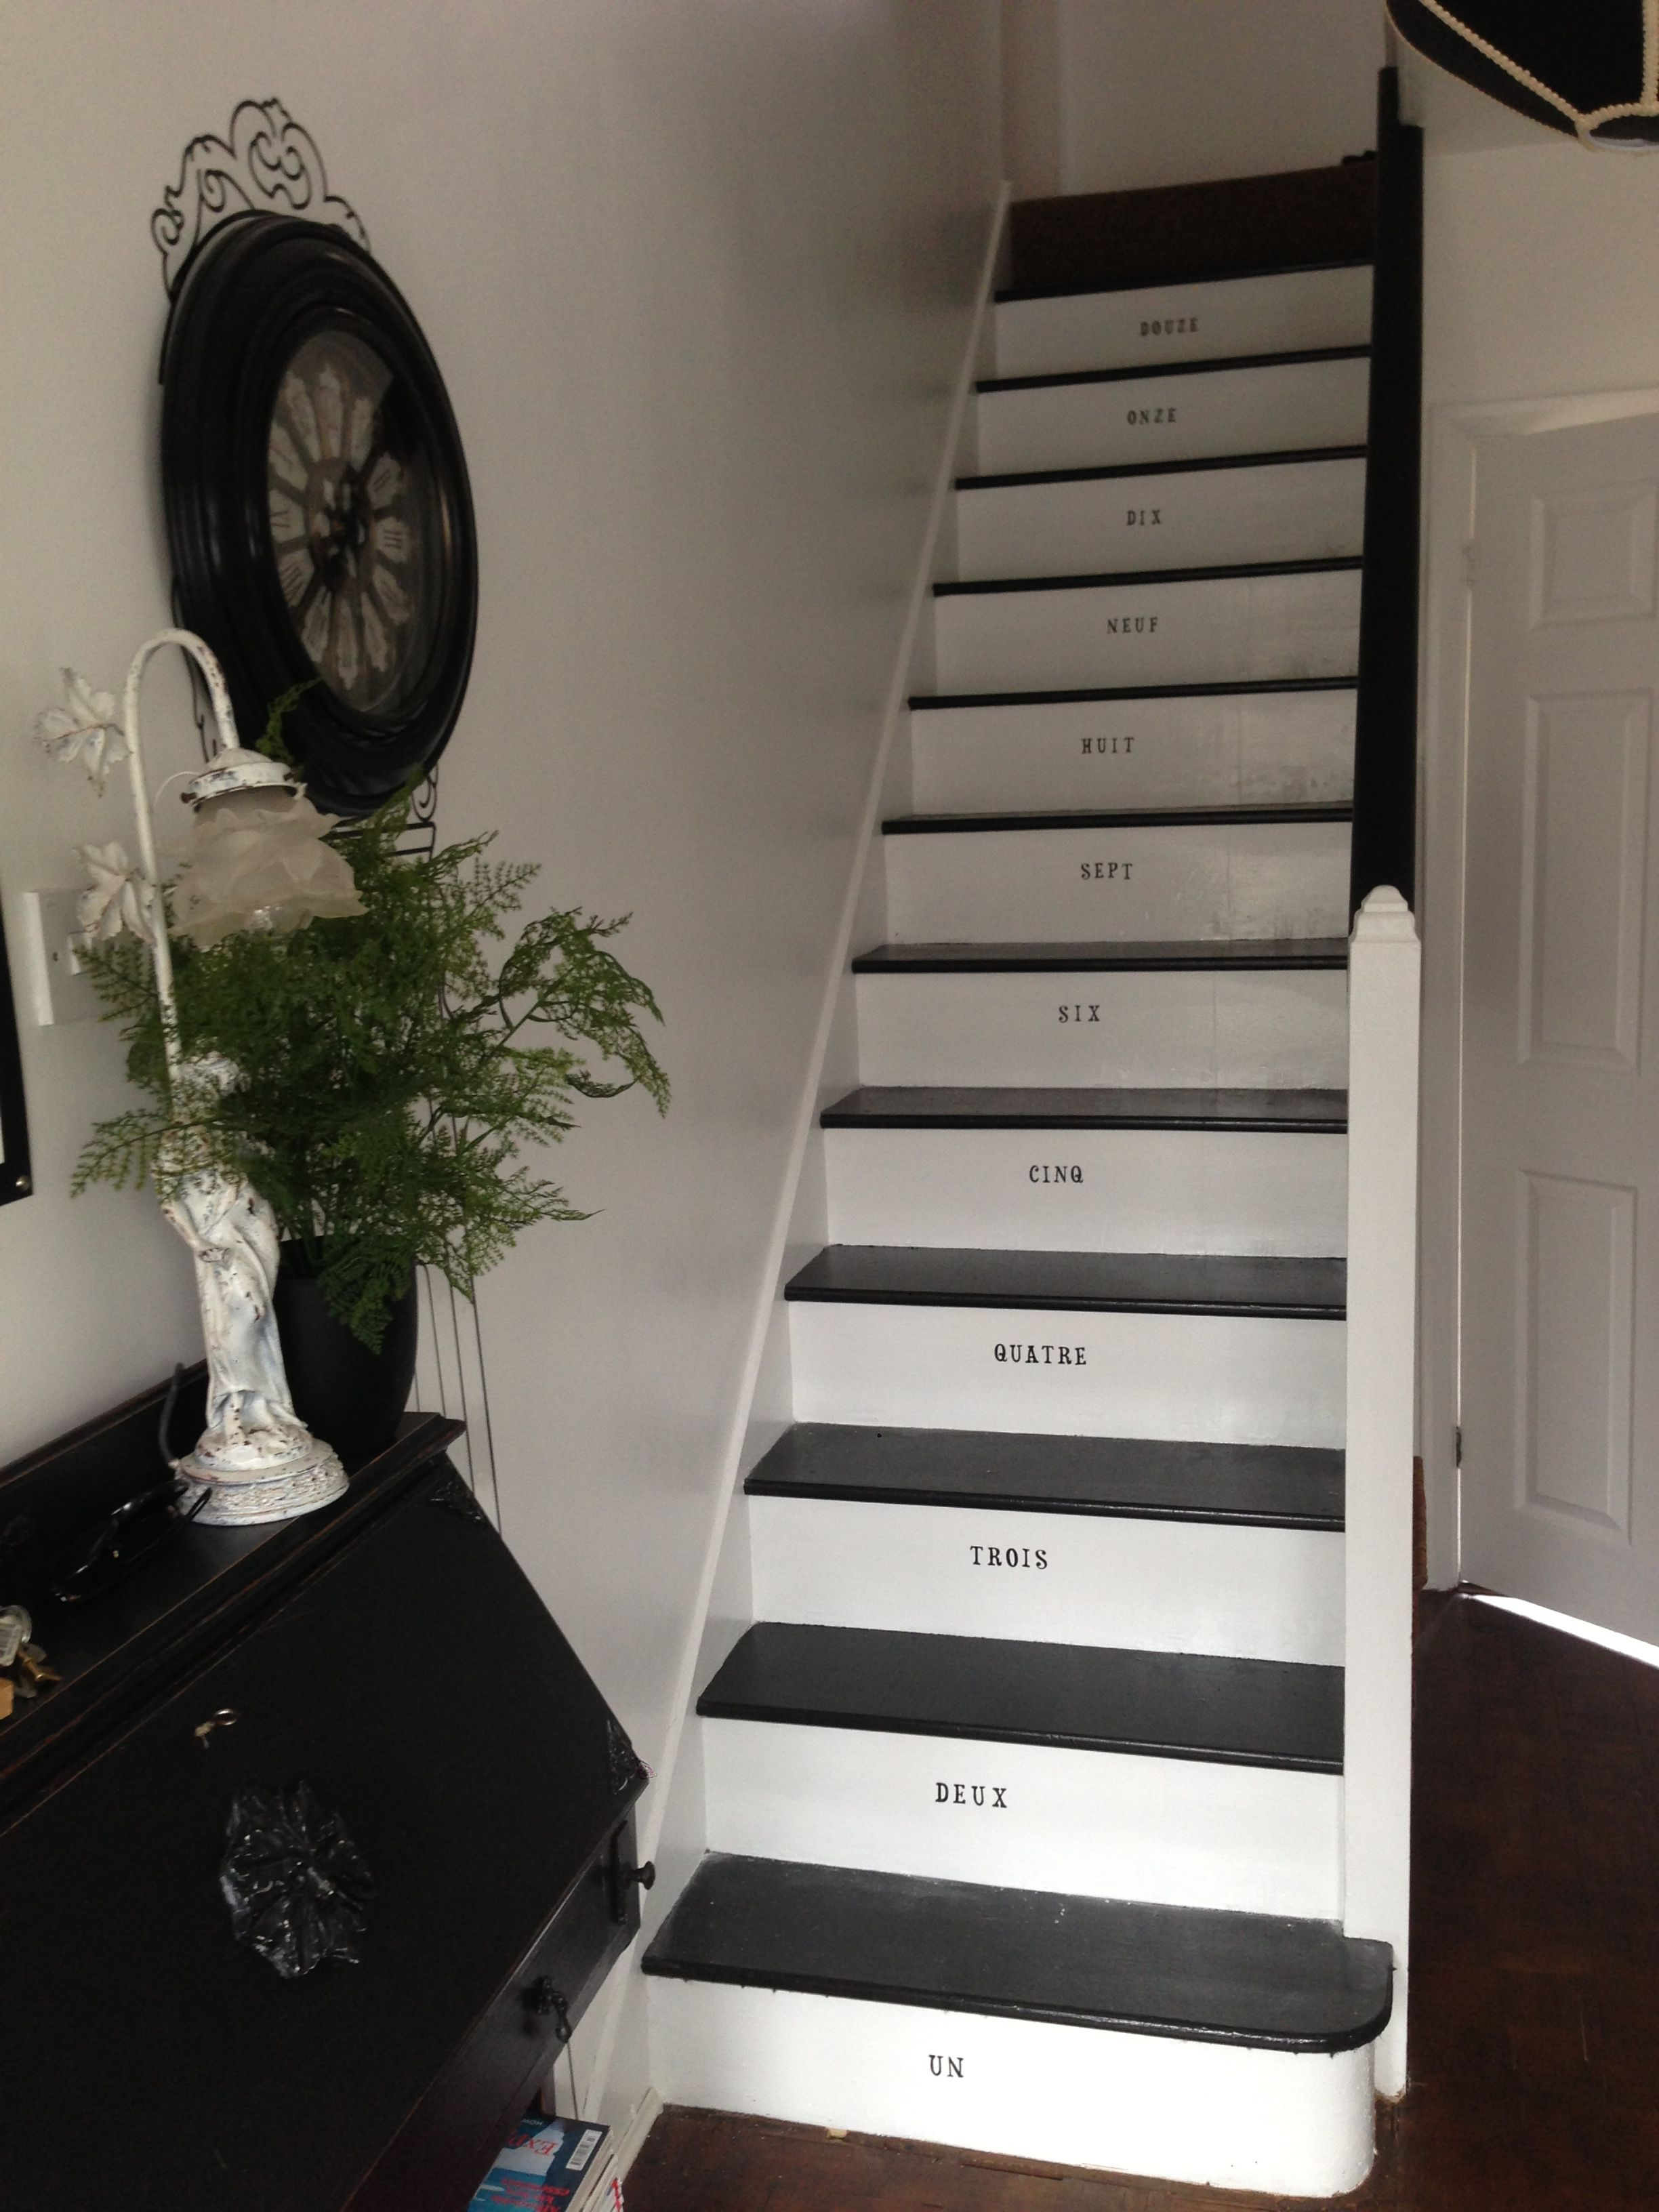 My Painted Stairs Which I Used An Eggshell Black For The Treads And A White Gloss For The Back Treads The Banister I Painted In Painted Stairs Home Home Decor